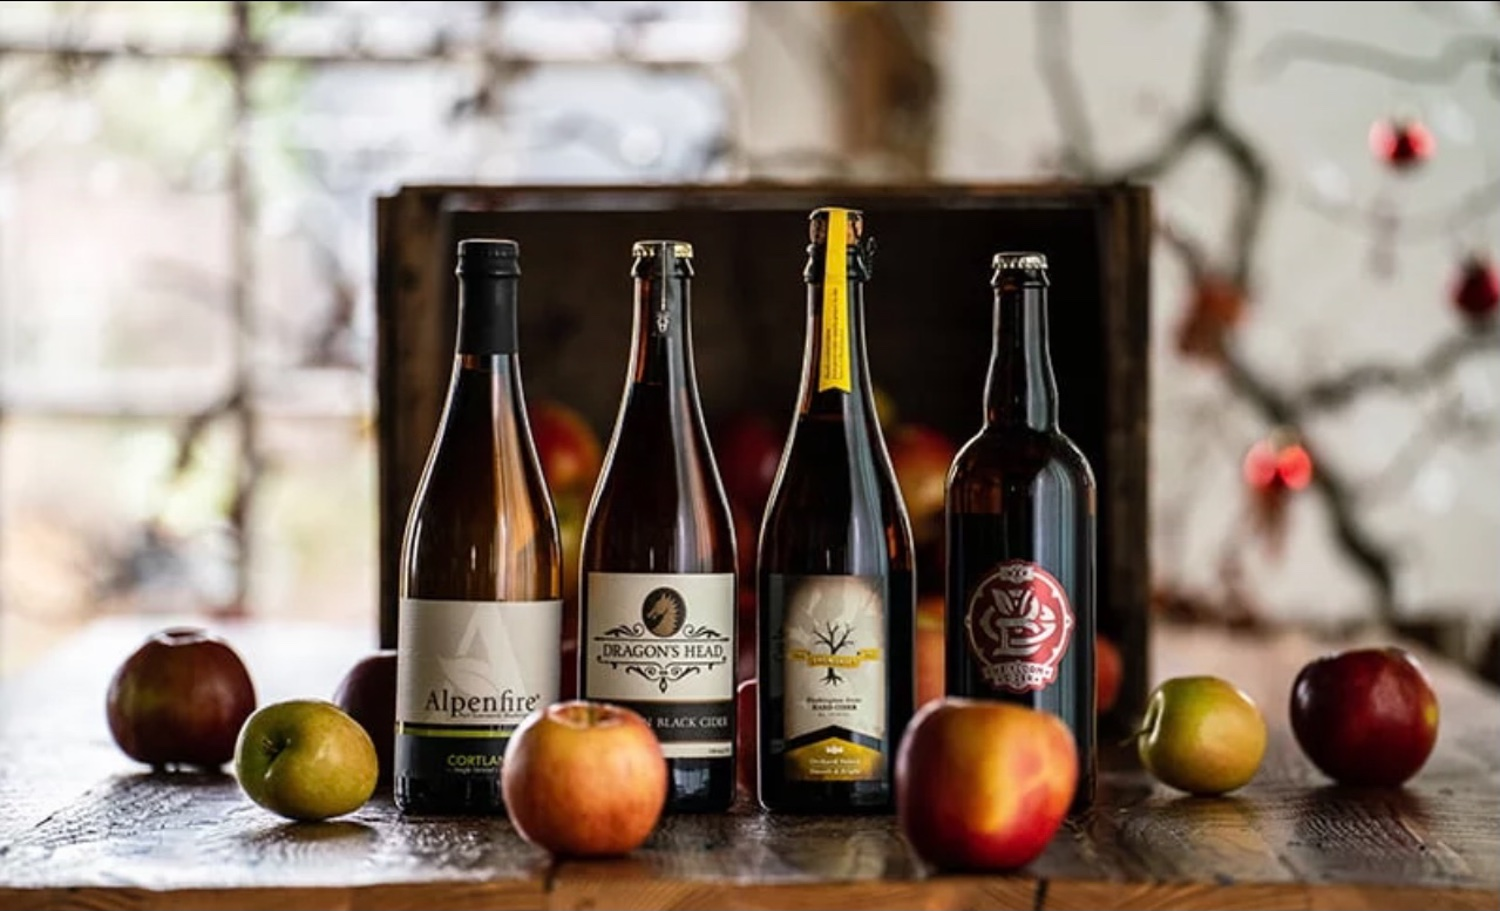 Northwest Cider Club Emily Ritchie & Jana Daisy-Ensign– Craft Beer Podcast Episode 134 by Steven Shomler